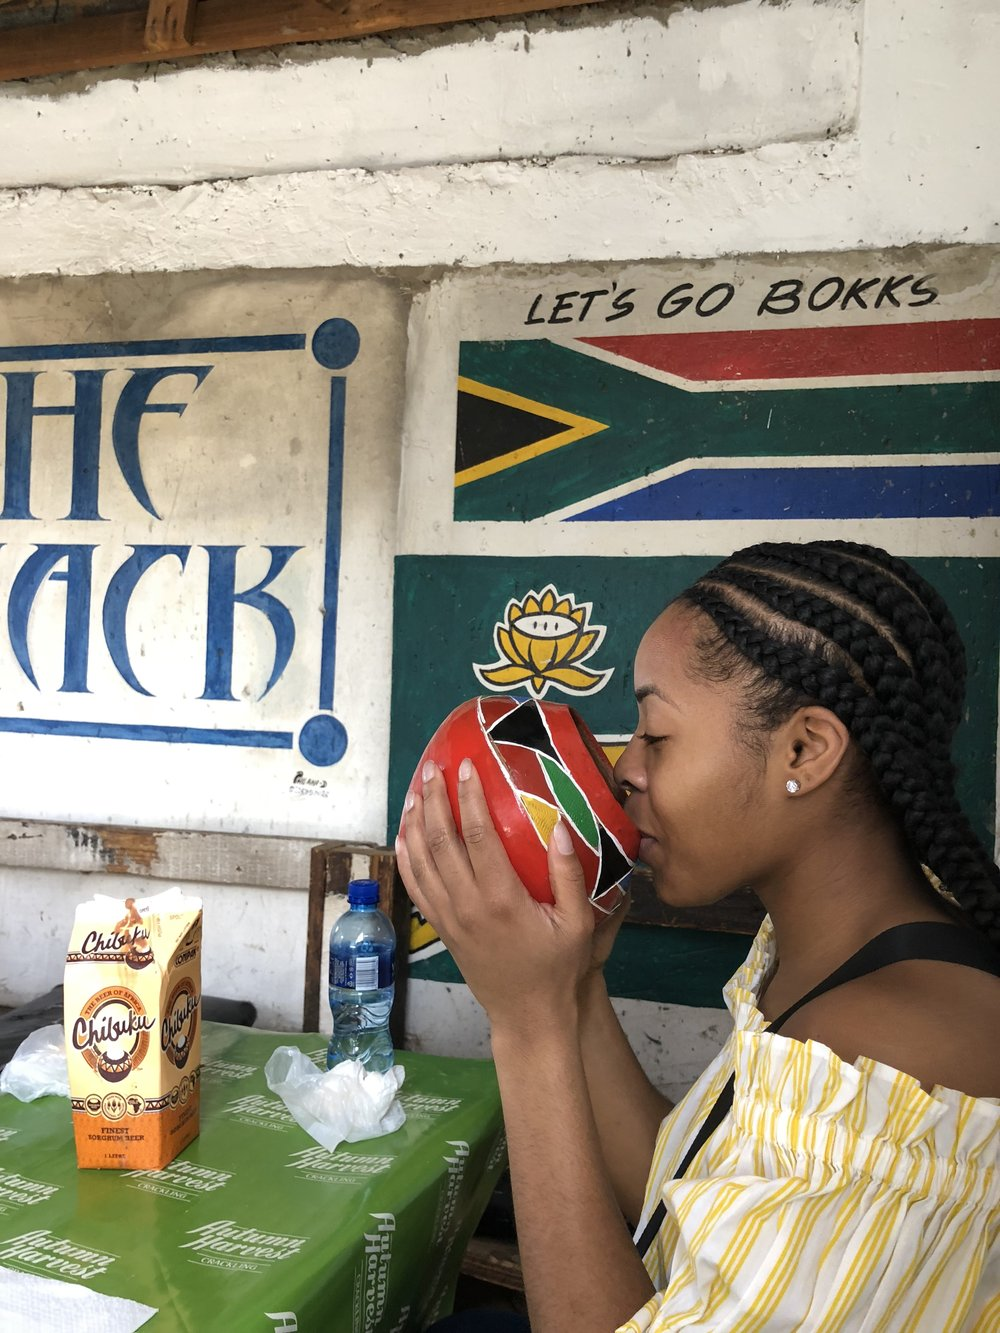 Drinking Chombuku (African Beer) from a Calabasch in South Africa -Alyssa 2018